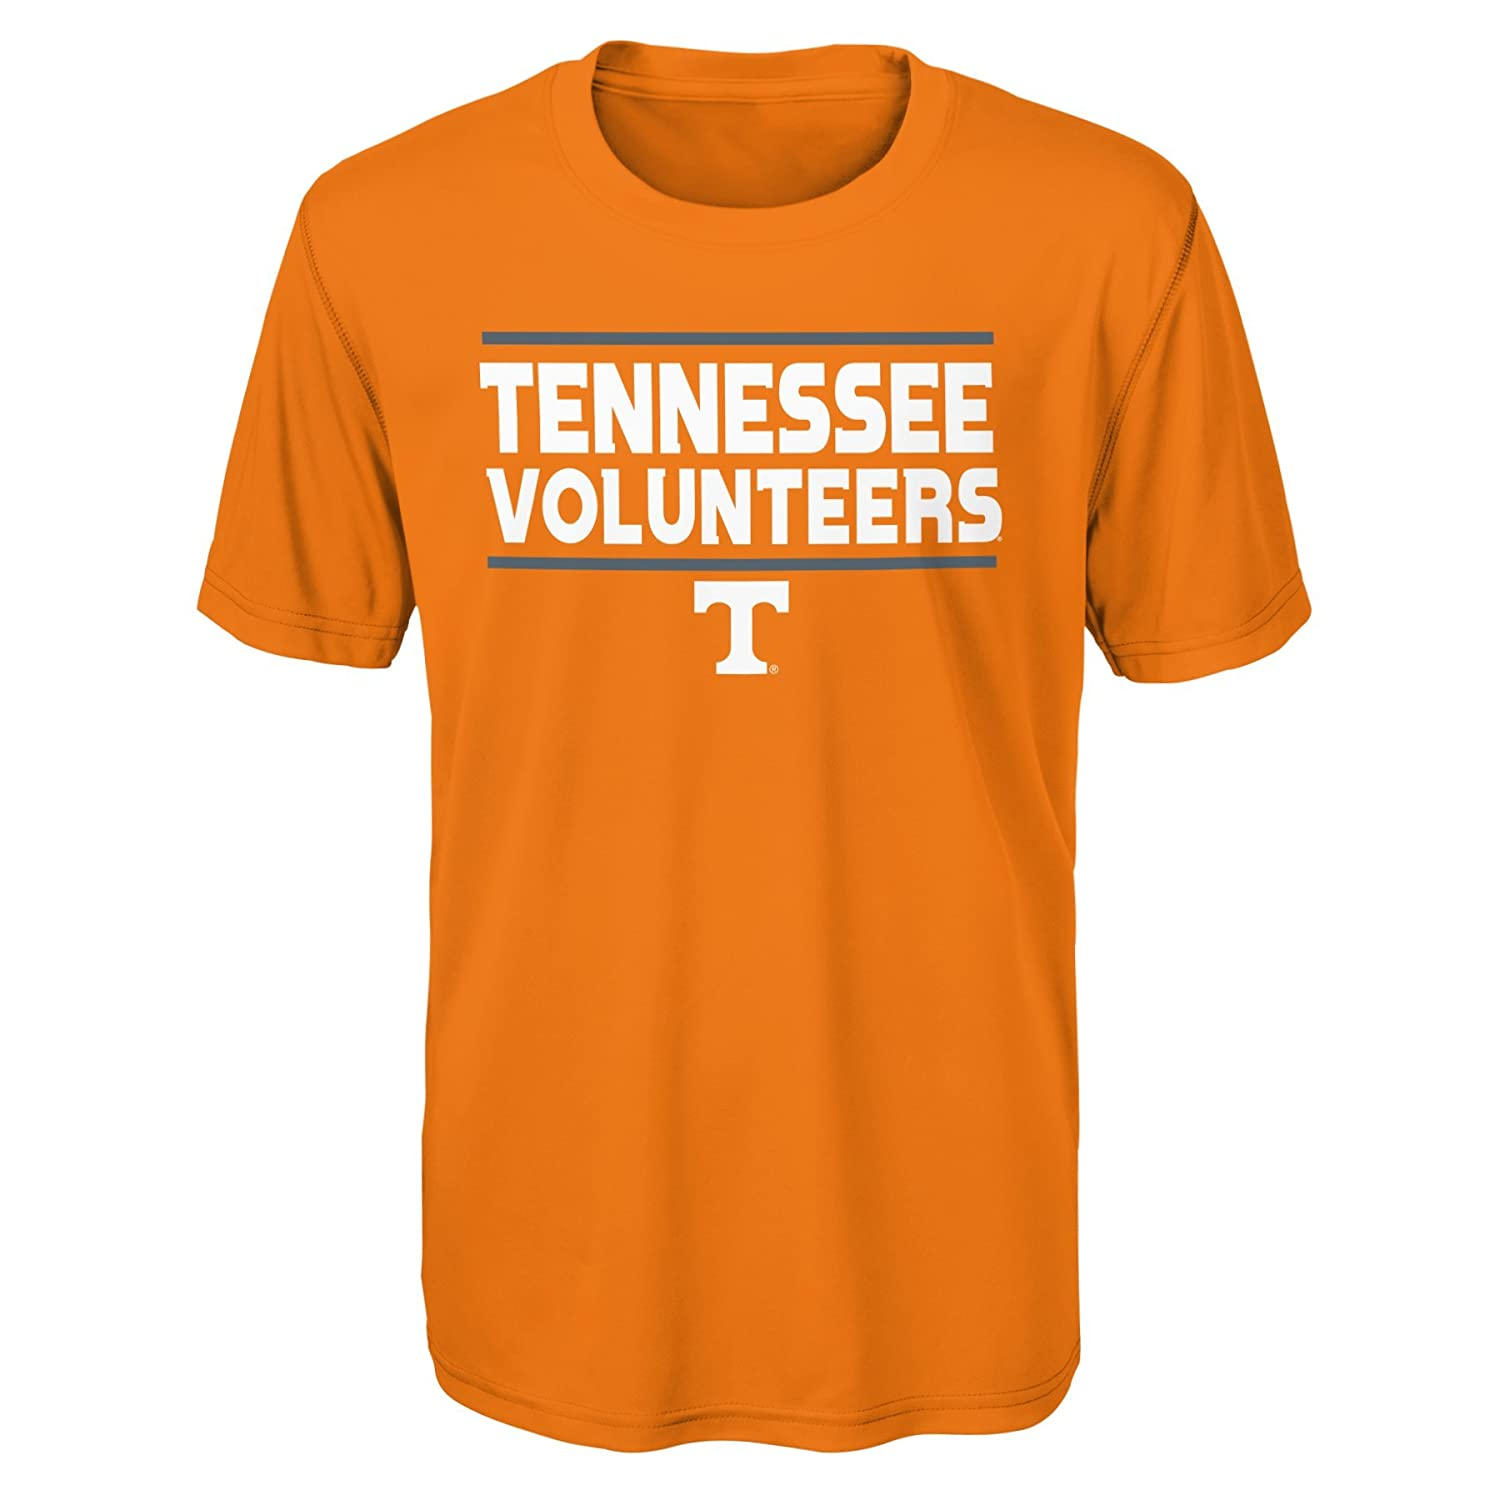 18 Light Orange Outerstuff NCAA Tennessee Volunteers Youth Boys Short Sleeve Performance Tee Youth Boys X-Large